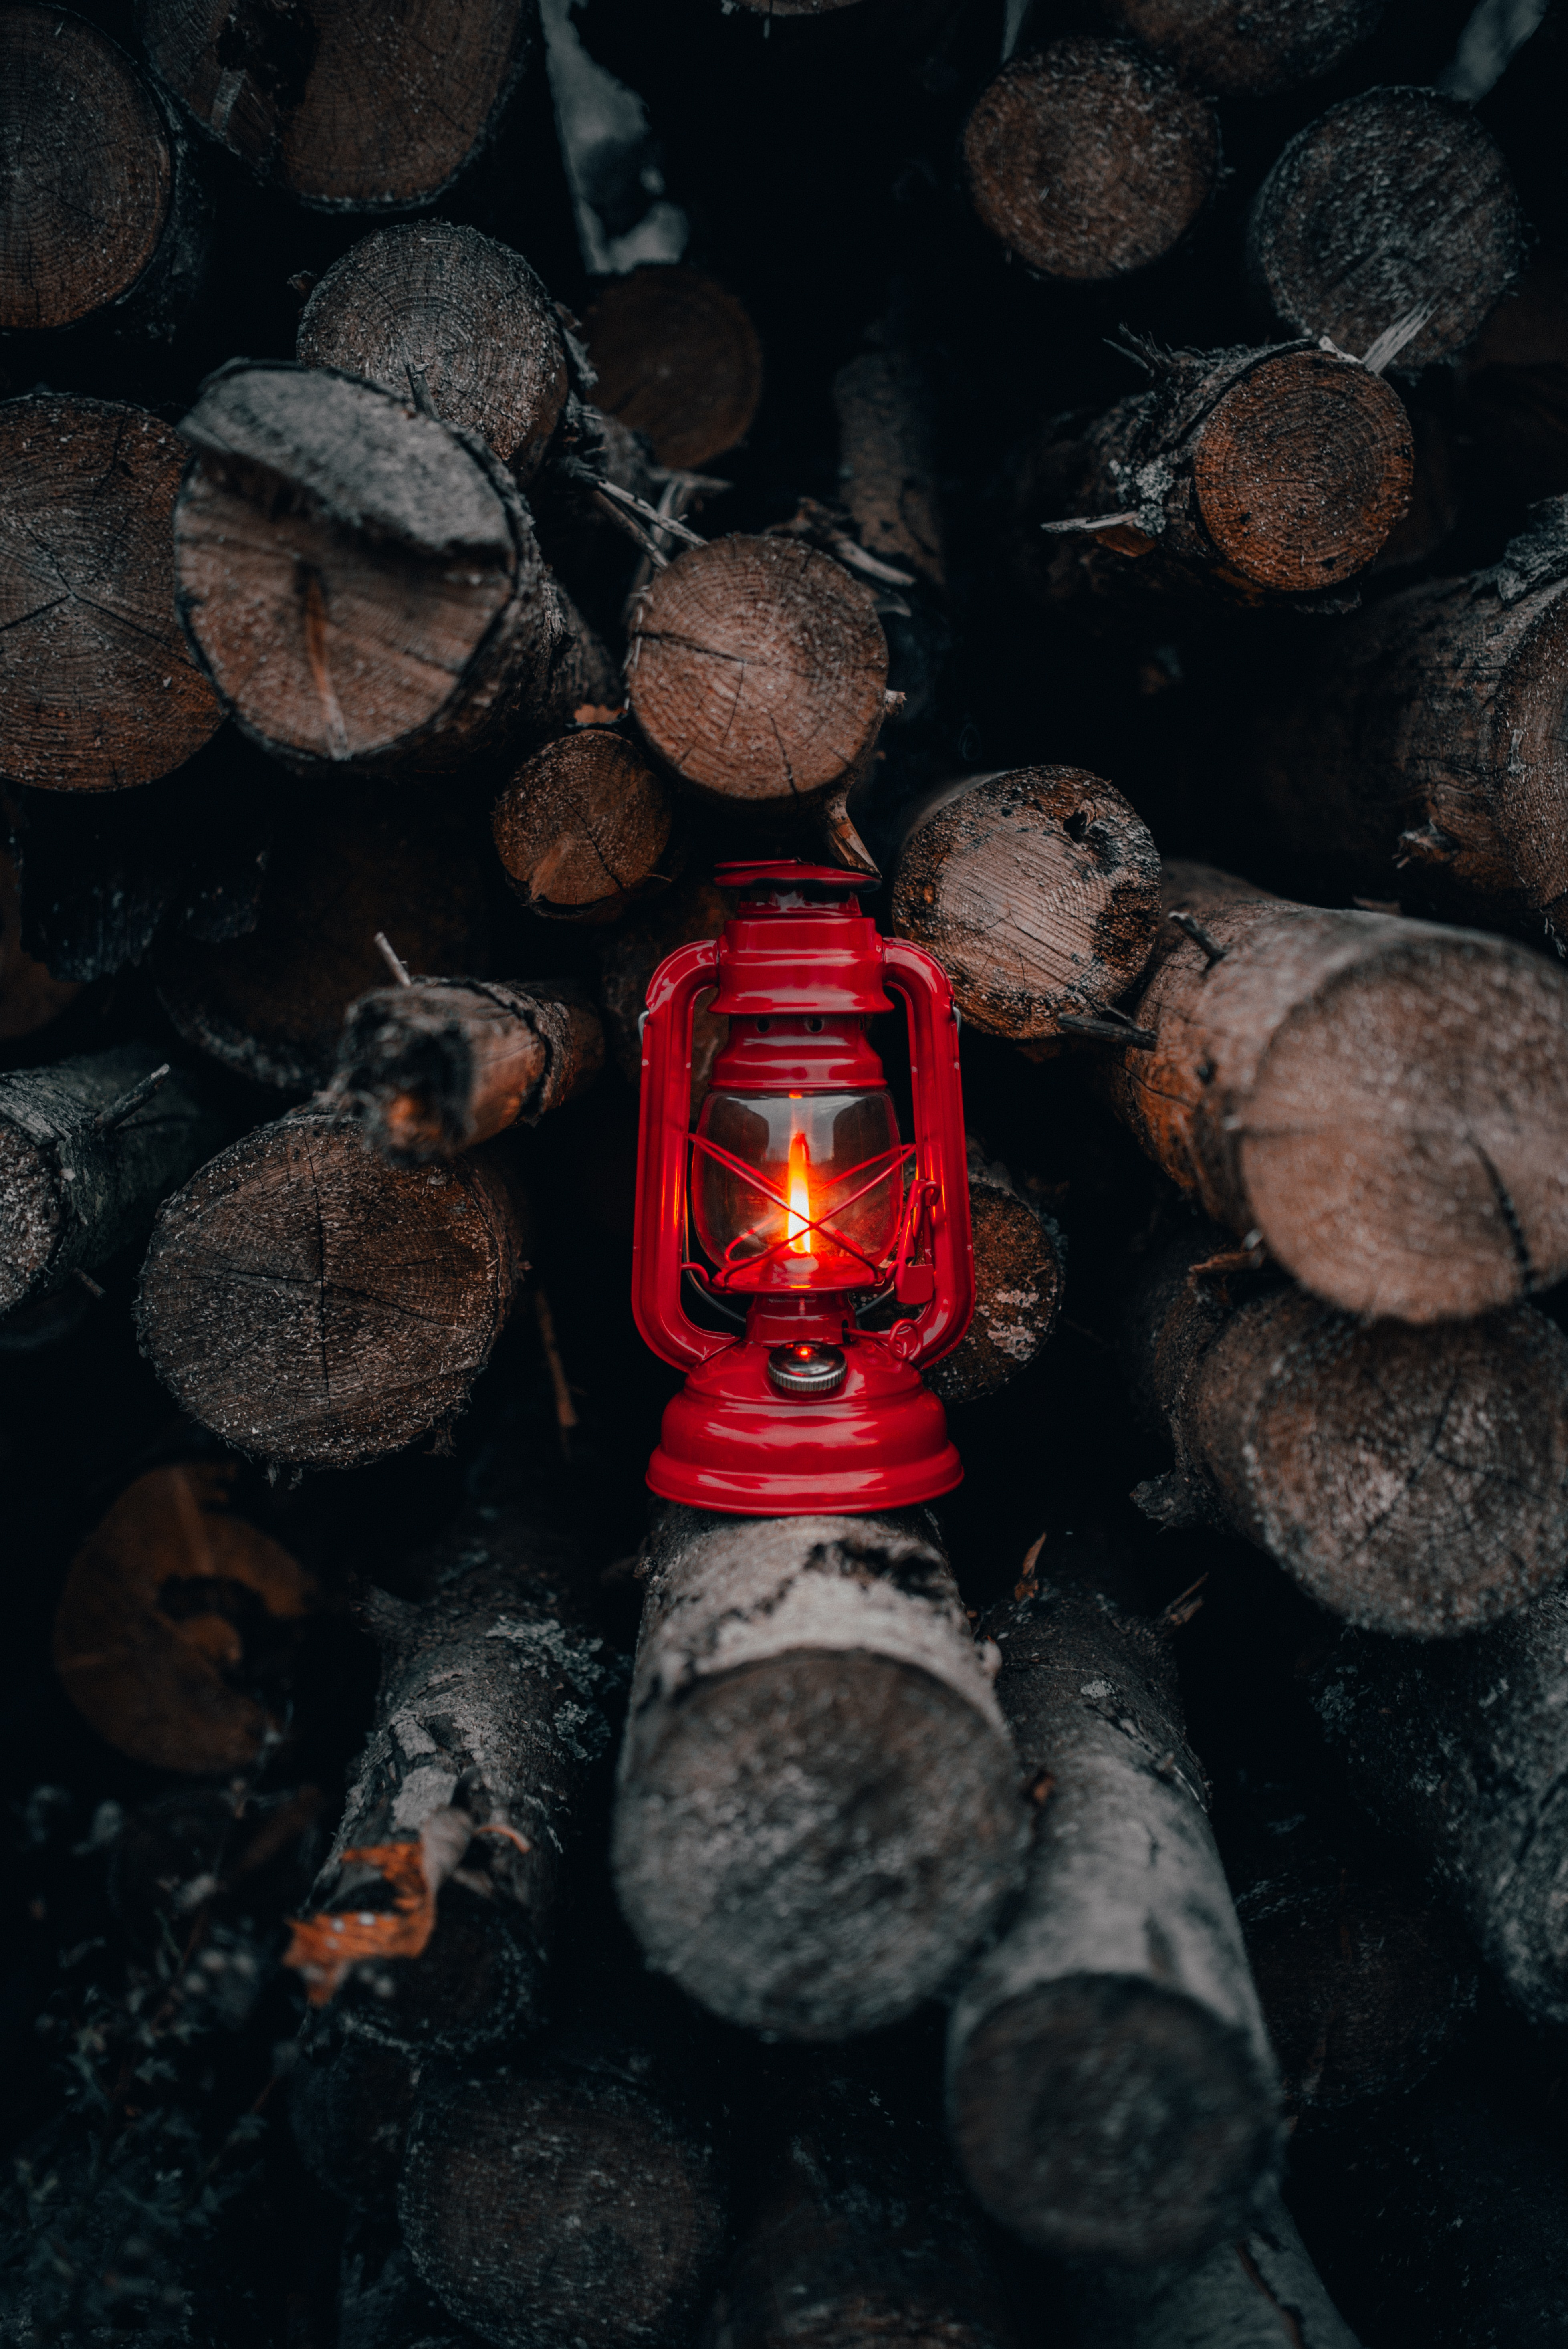 126642 download wallpaper Firewood, Fire, Shine, Light, Miscellanea, Miscellaneous, Lamp, Lantern screensavers and pictures for free